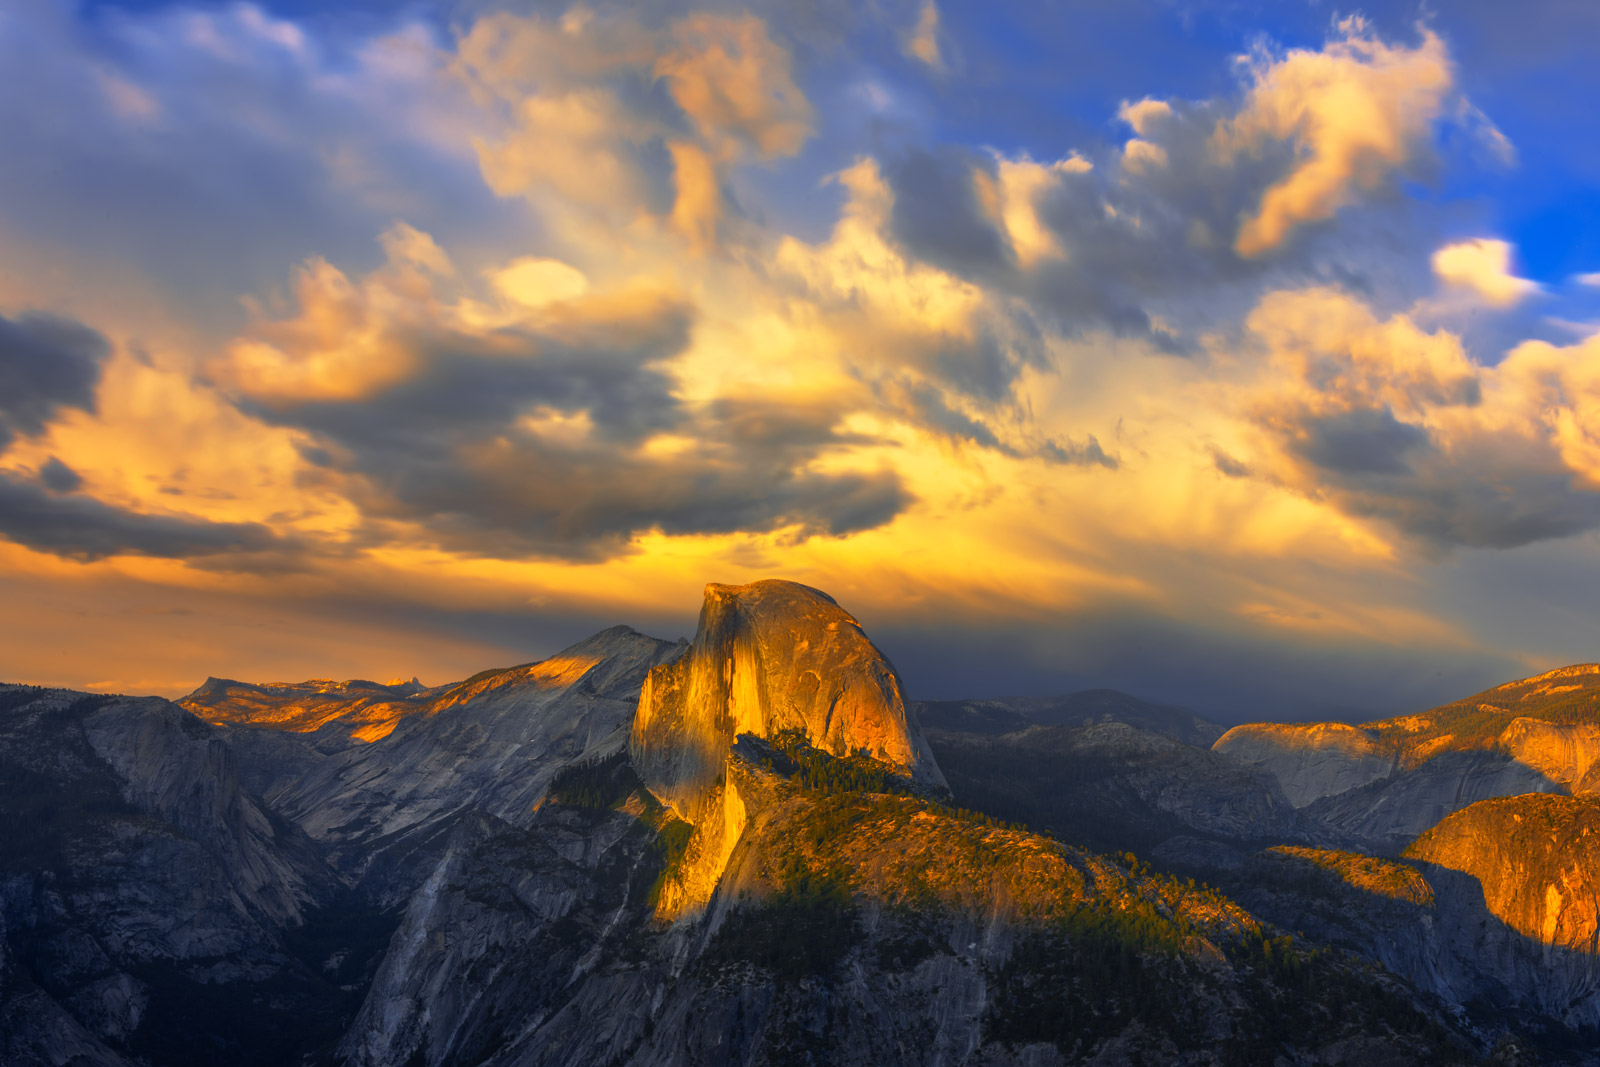 A Limited Edition, Fine Art photograph of Half Dome from Glacier Point with sunset clouds exploding at sunset at Yosemite National...